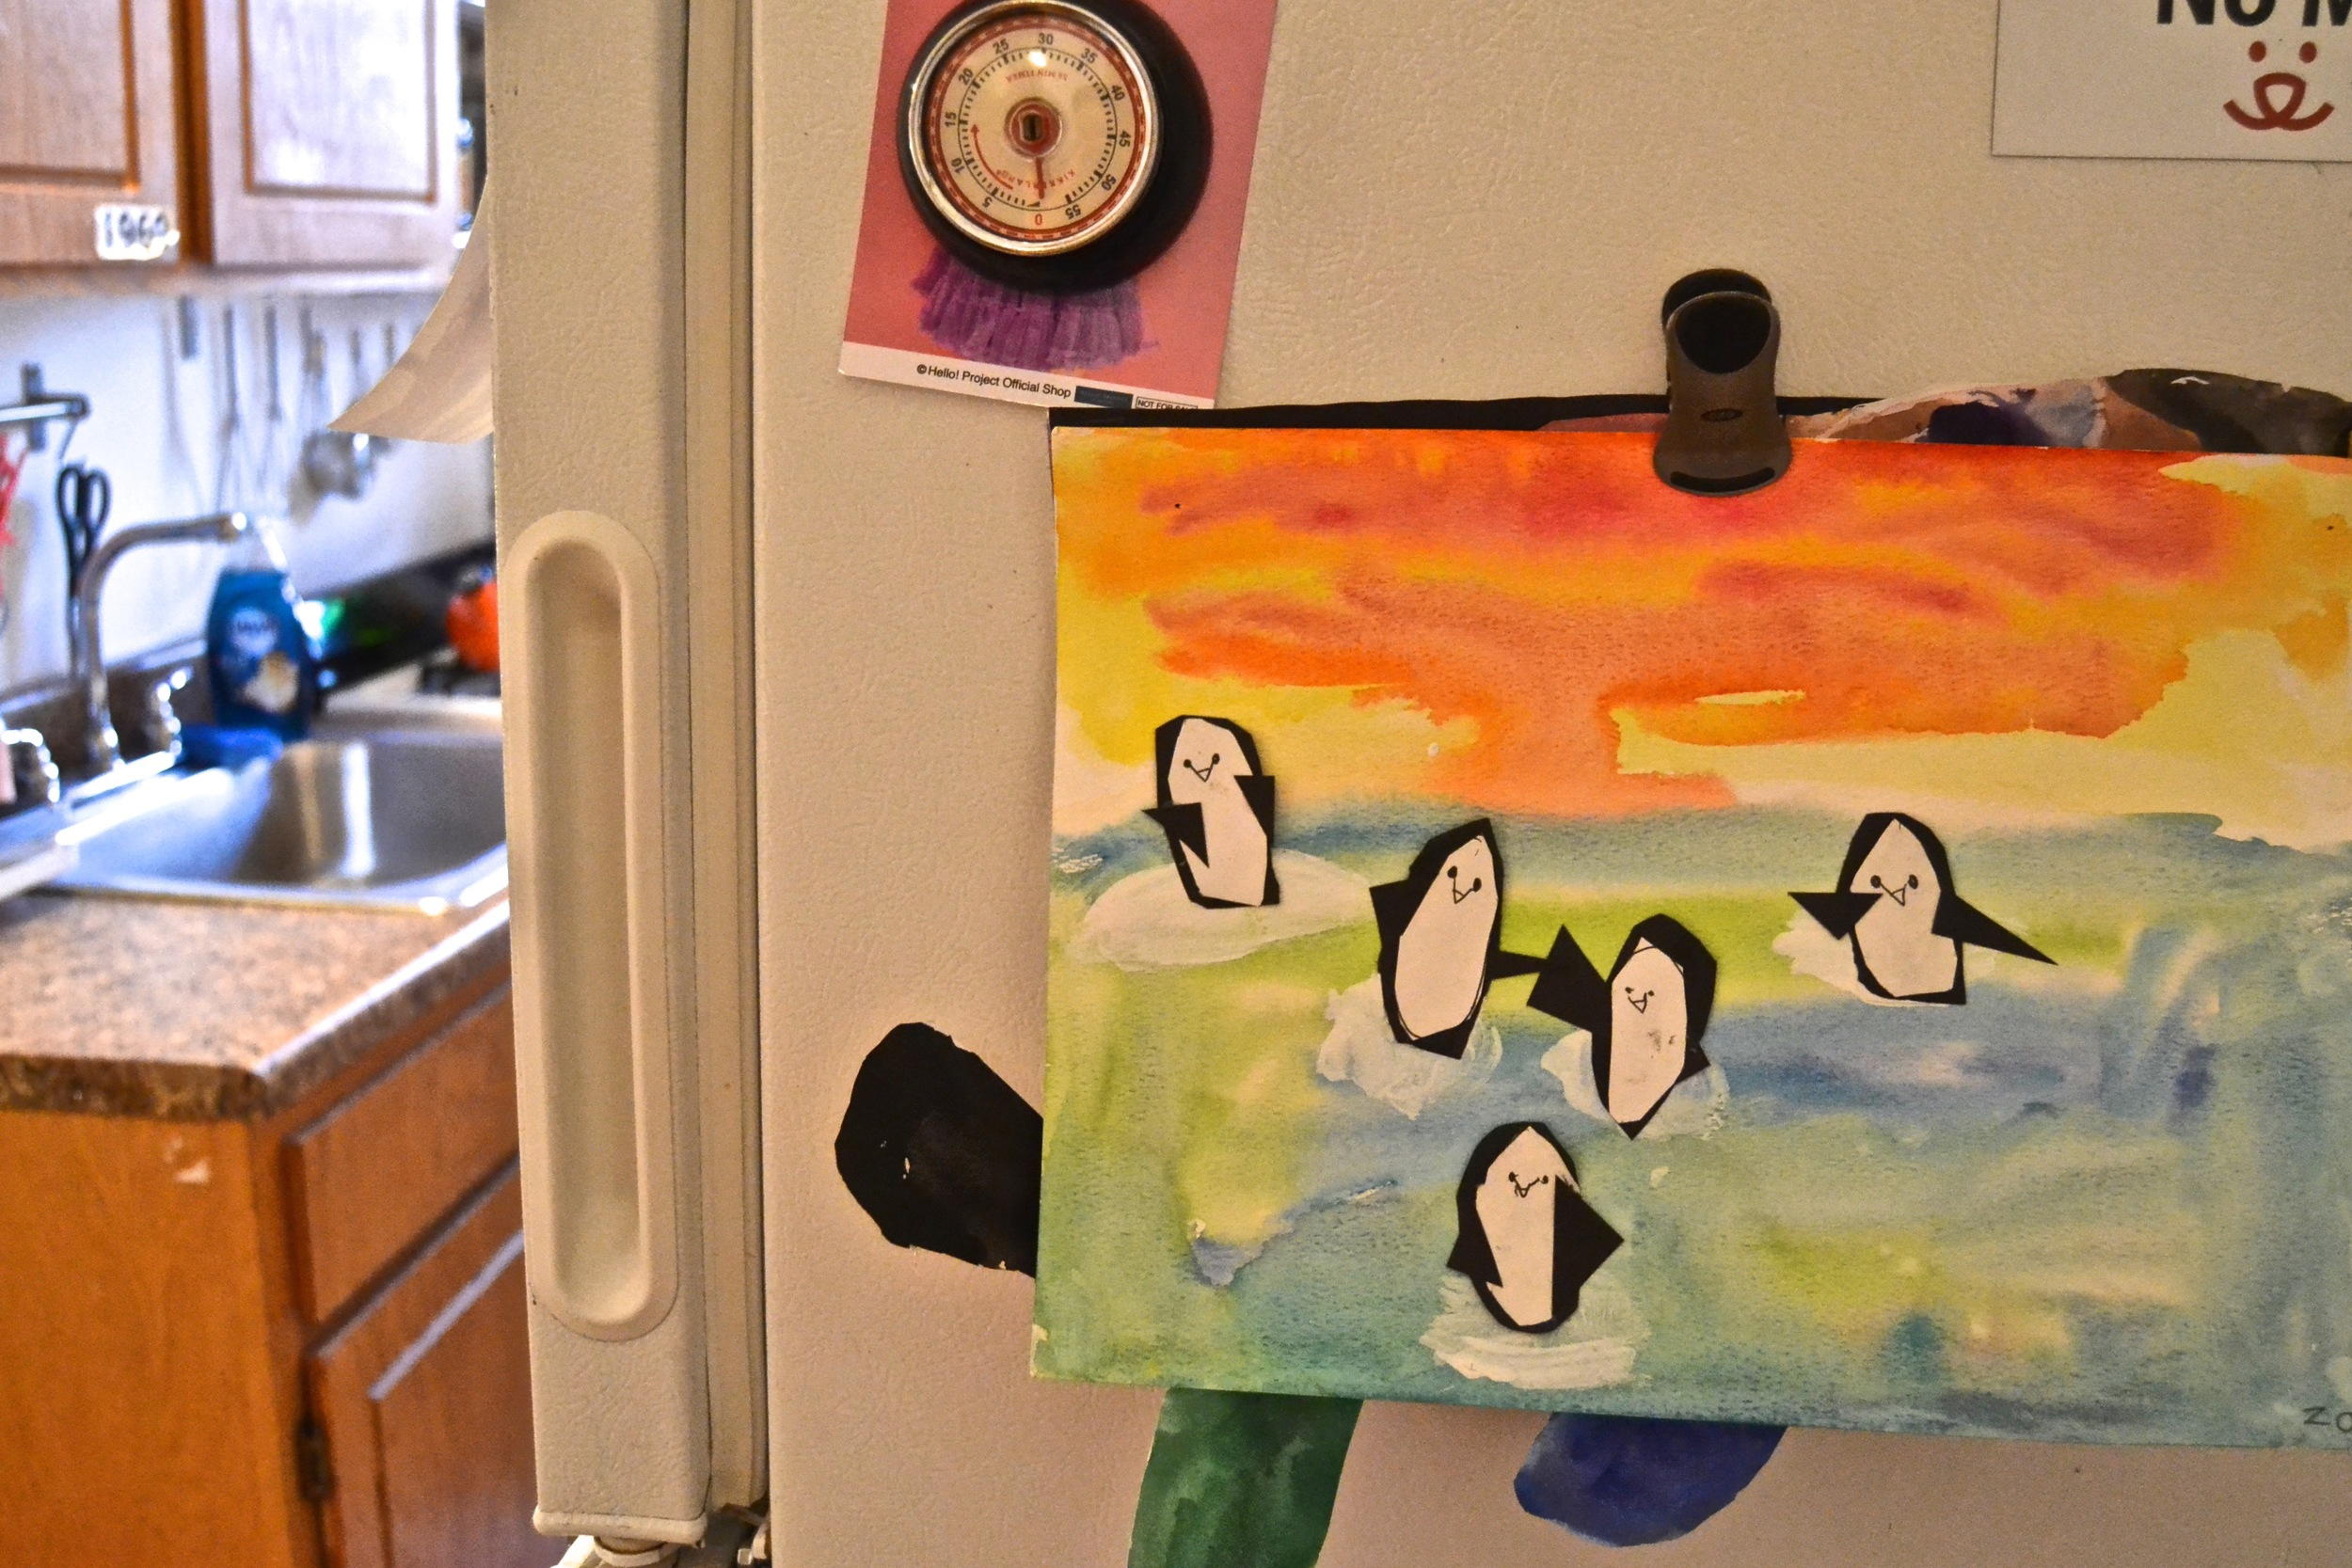 Upon entering the space, one is greeted by the happiest of penguins.